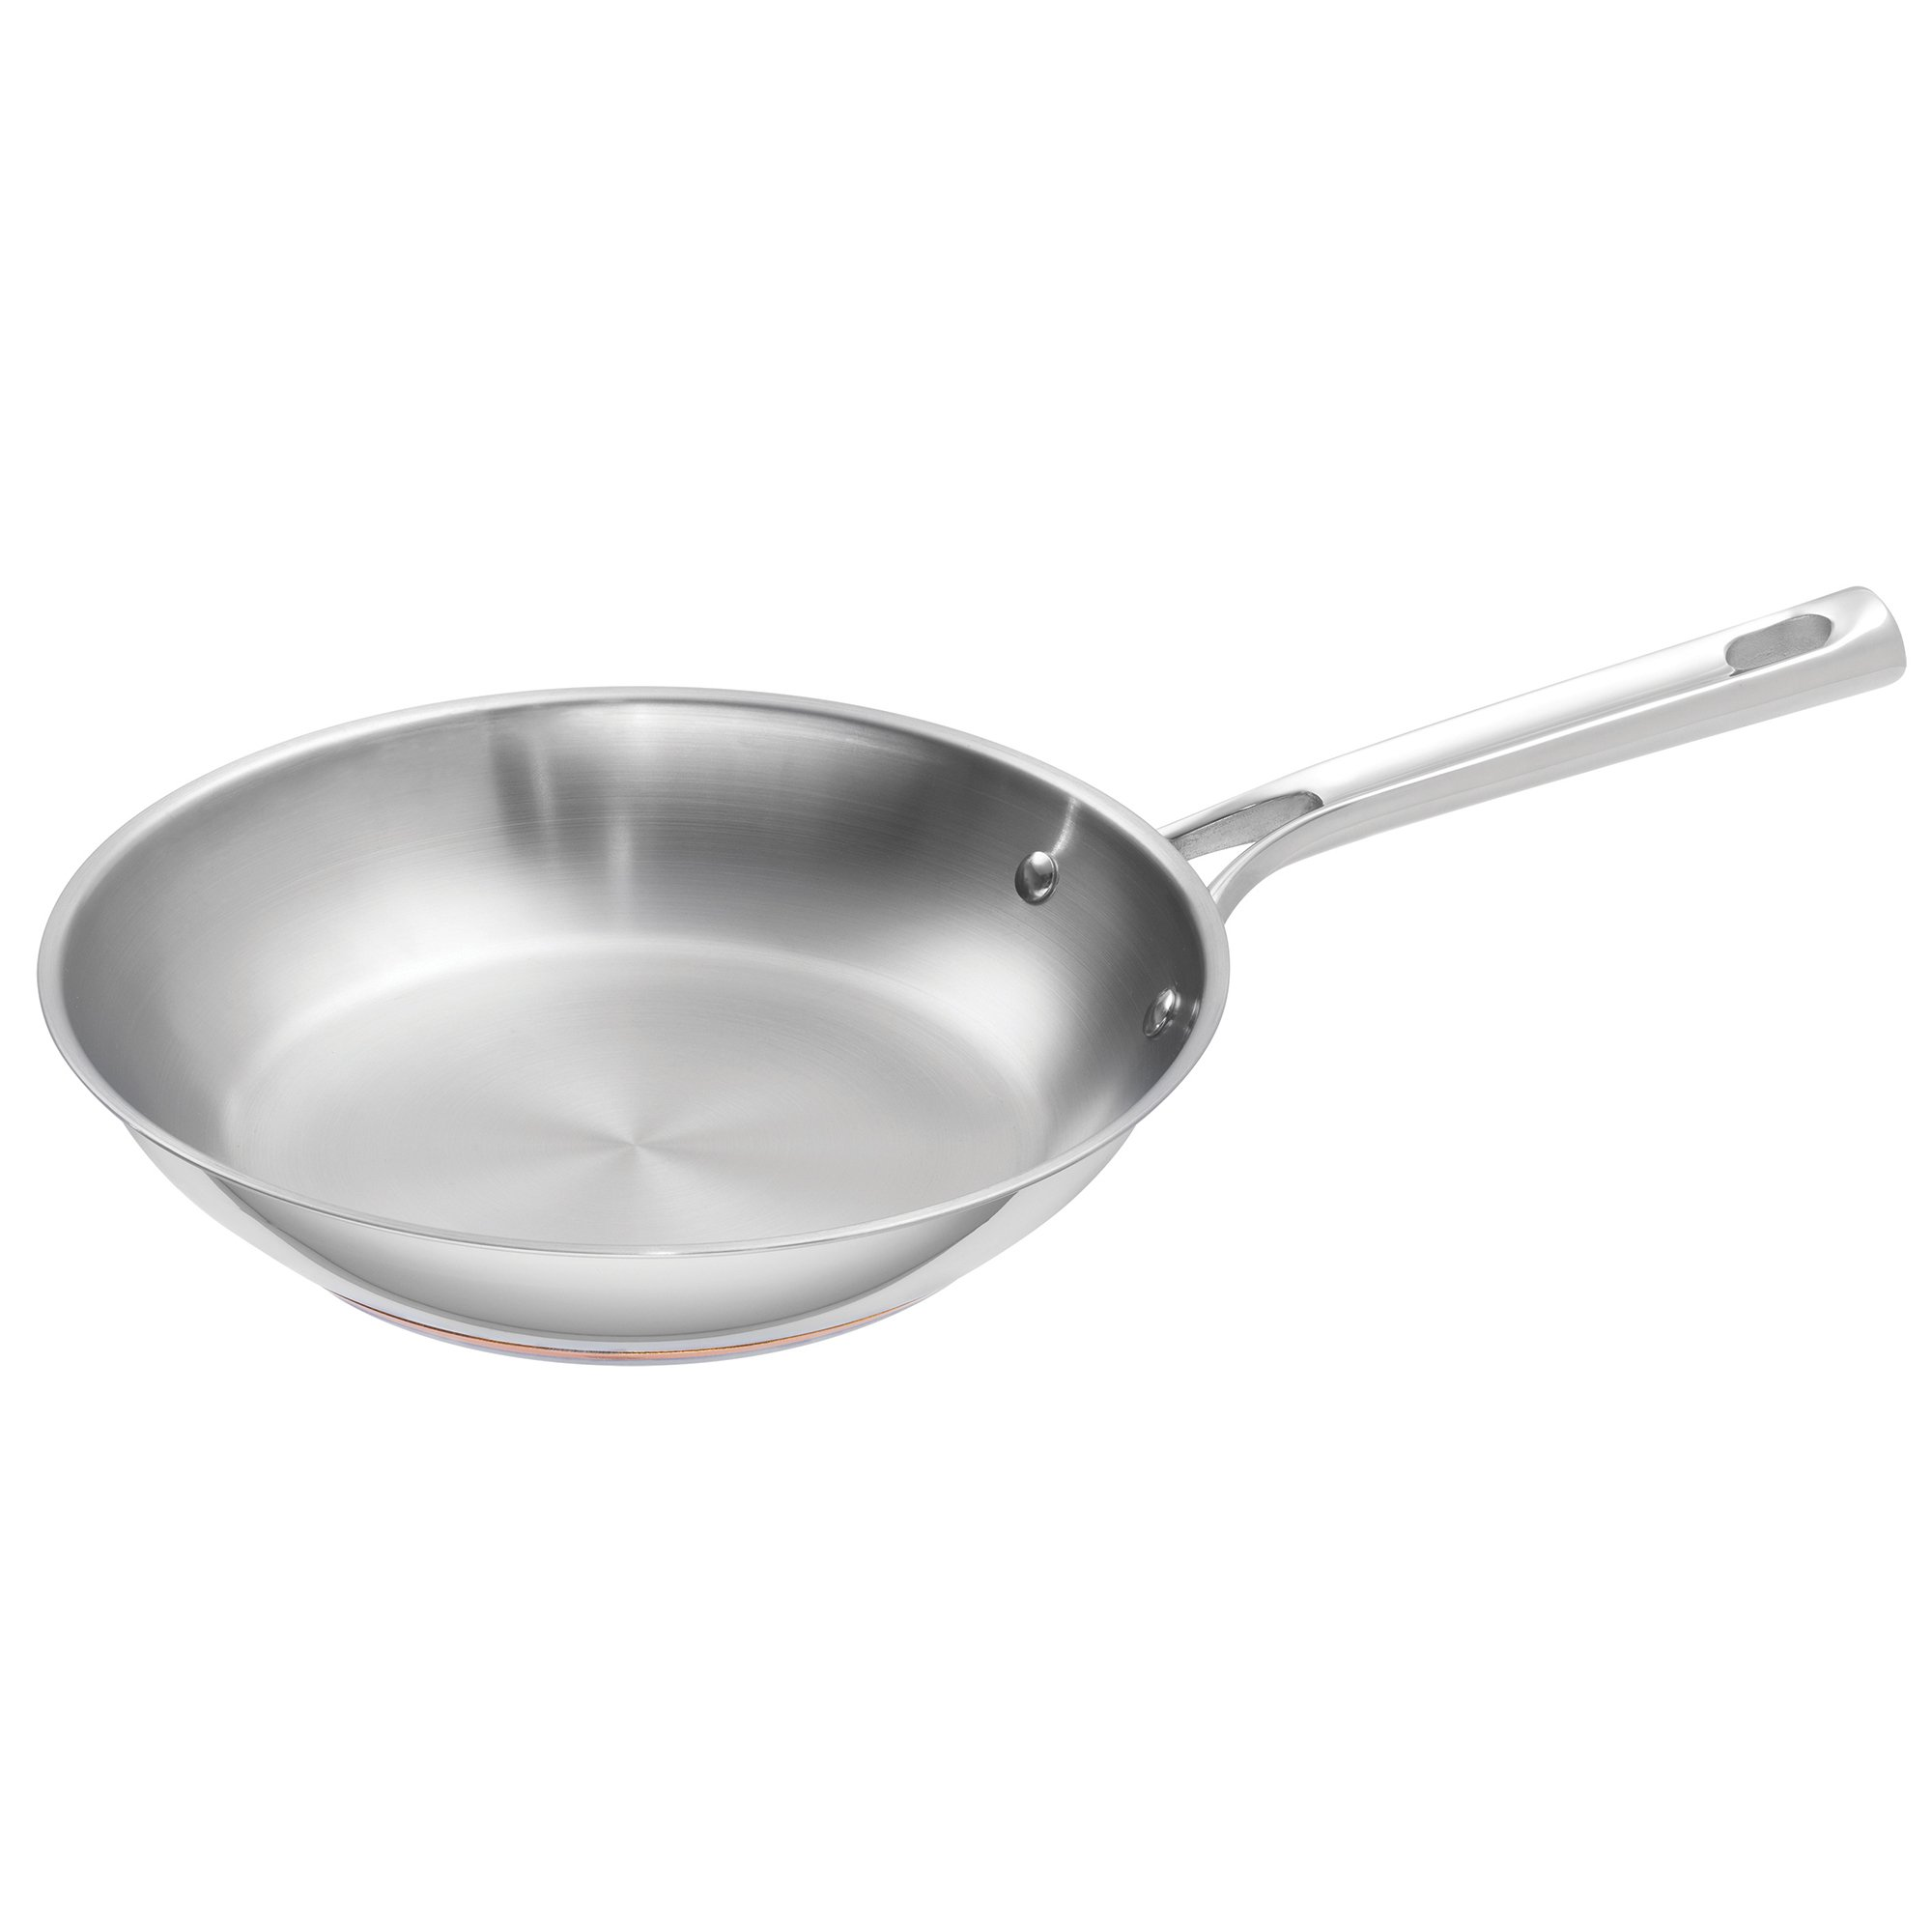 Emeril Lagasse Stainless Steel Copper Core Fry Pan, 10'', Silver